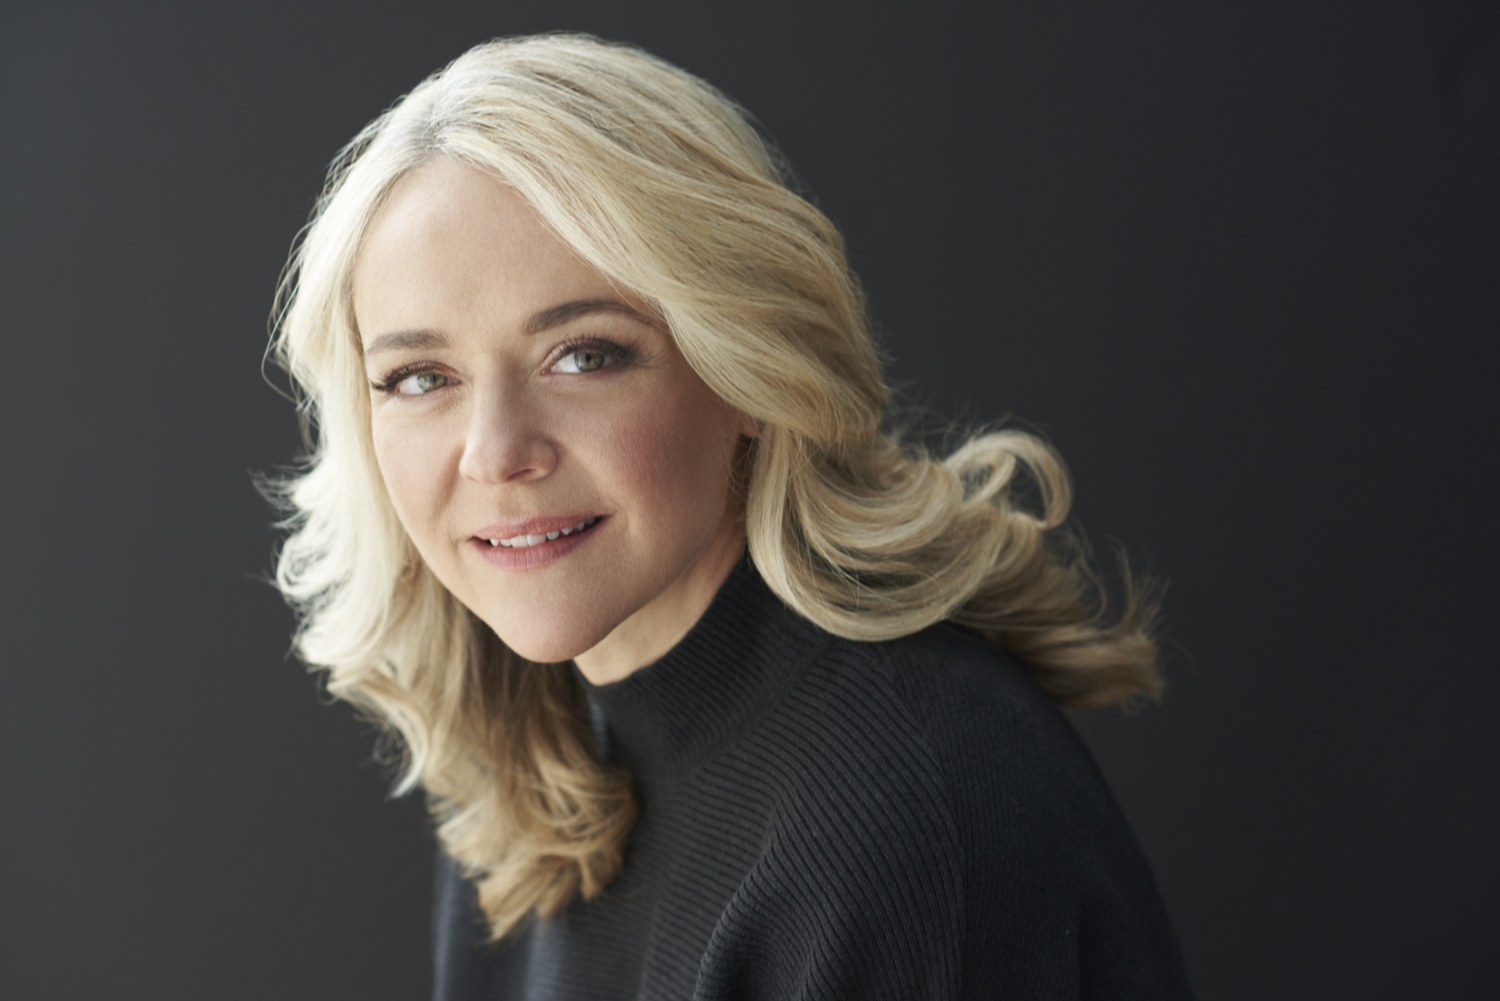 BWW Interview: From Maui to Michigan, Rachel Bay Jones Will Perform Her SOMETHING BEAUTIFUL CONCERT as the Season Opener for Detroit's Cabaret 313 on Sept. 22.